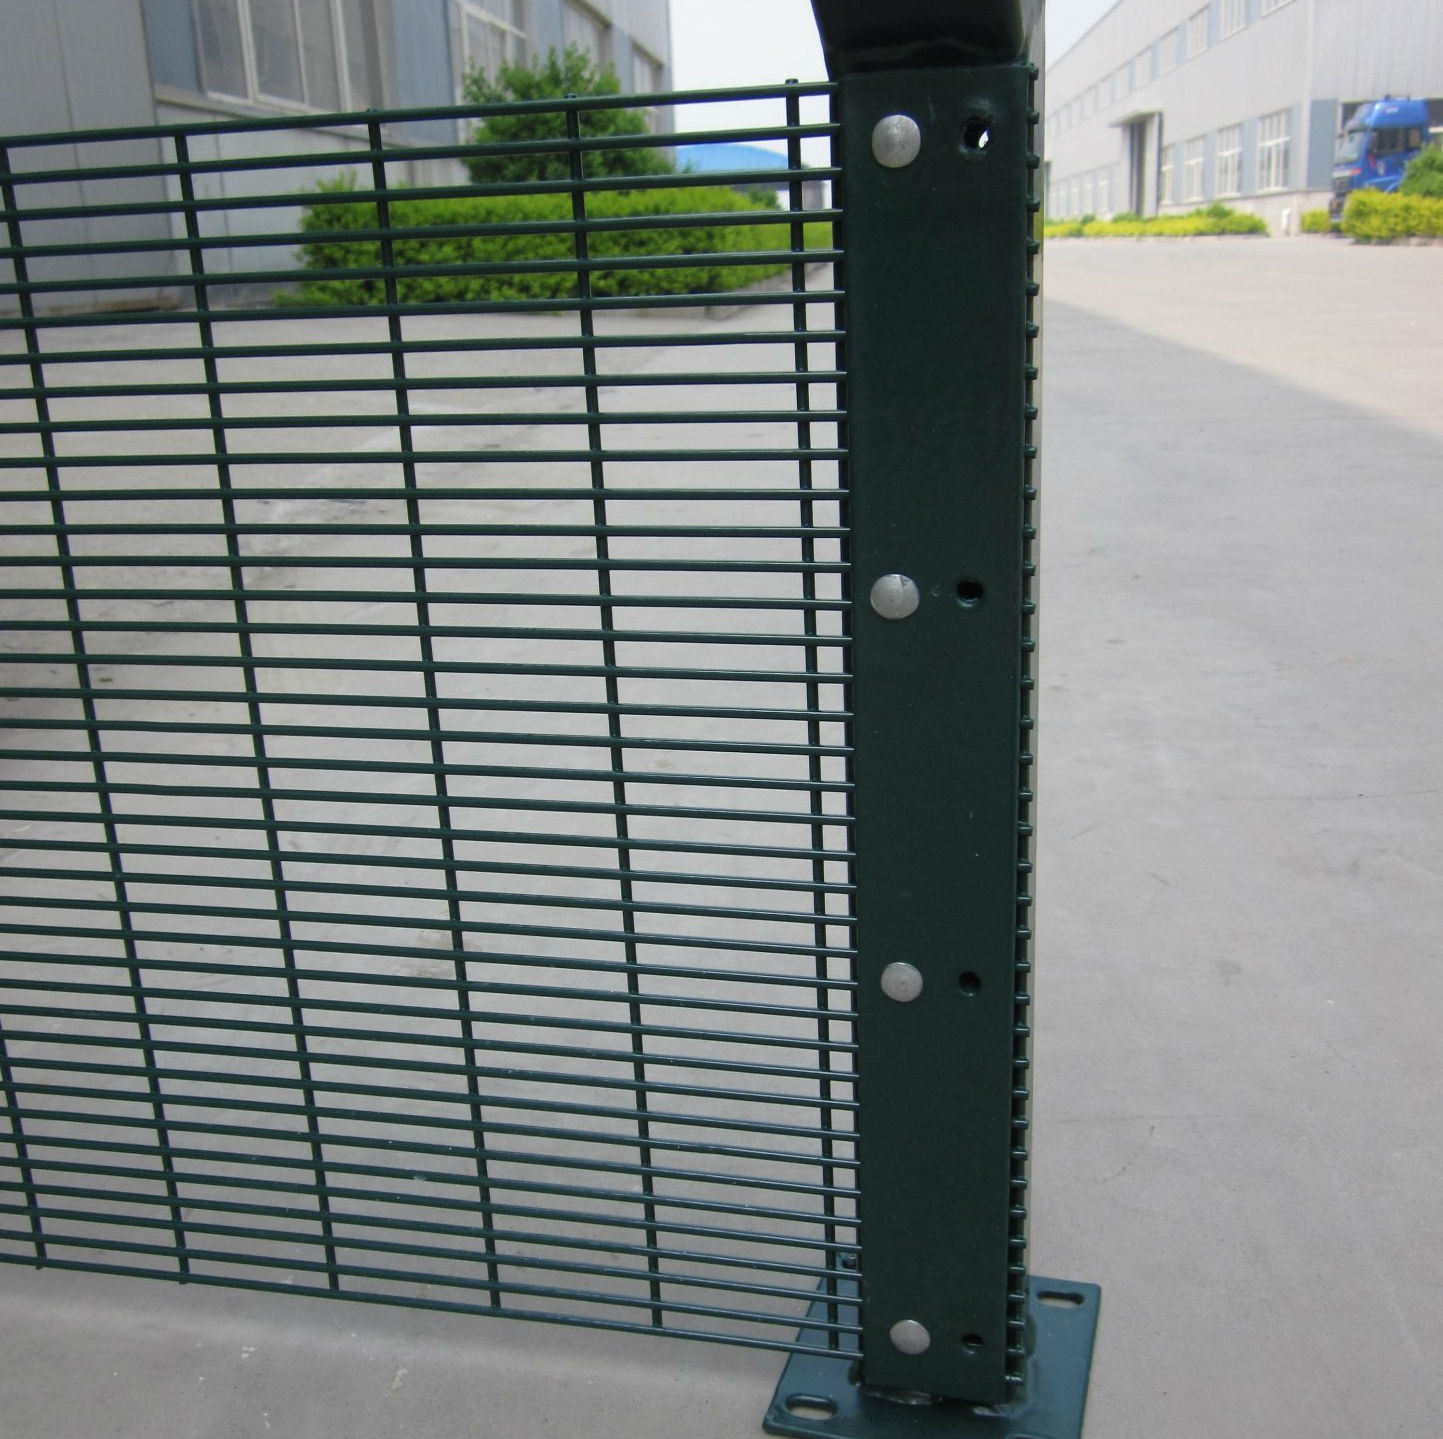 China High Security Welded Wire Mesh Fence Panels For Building Wiring A Metal Material With Sgs